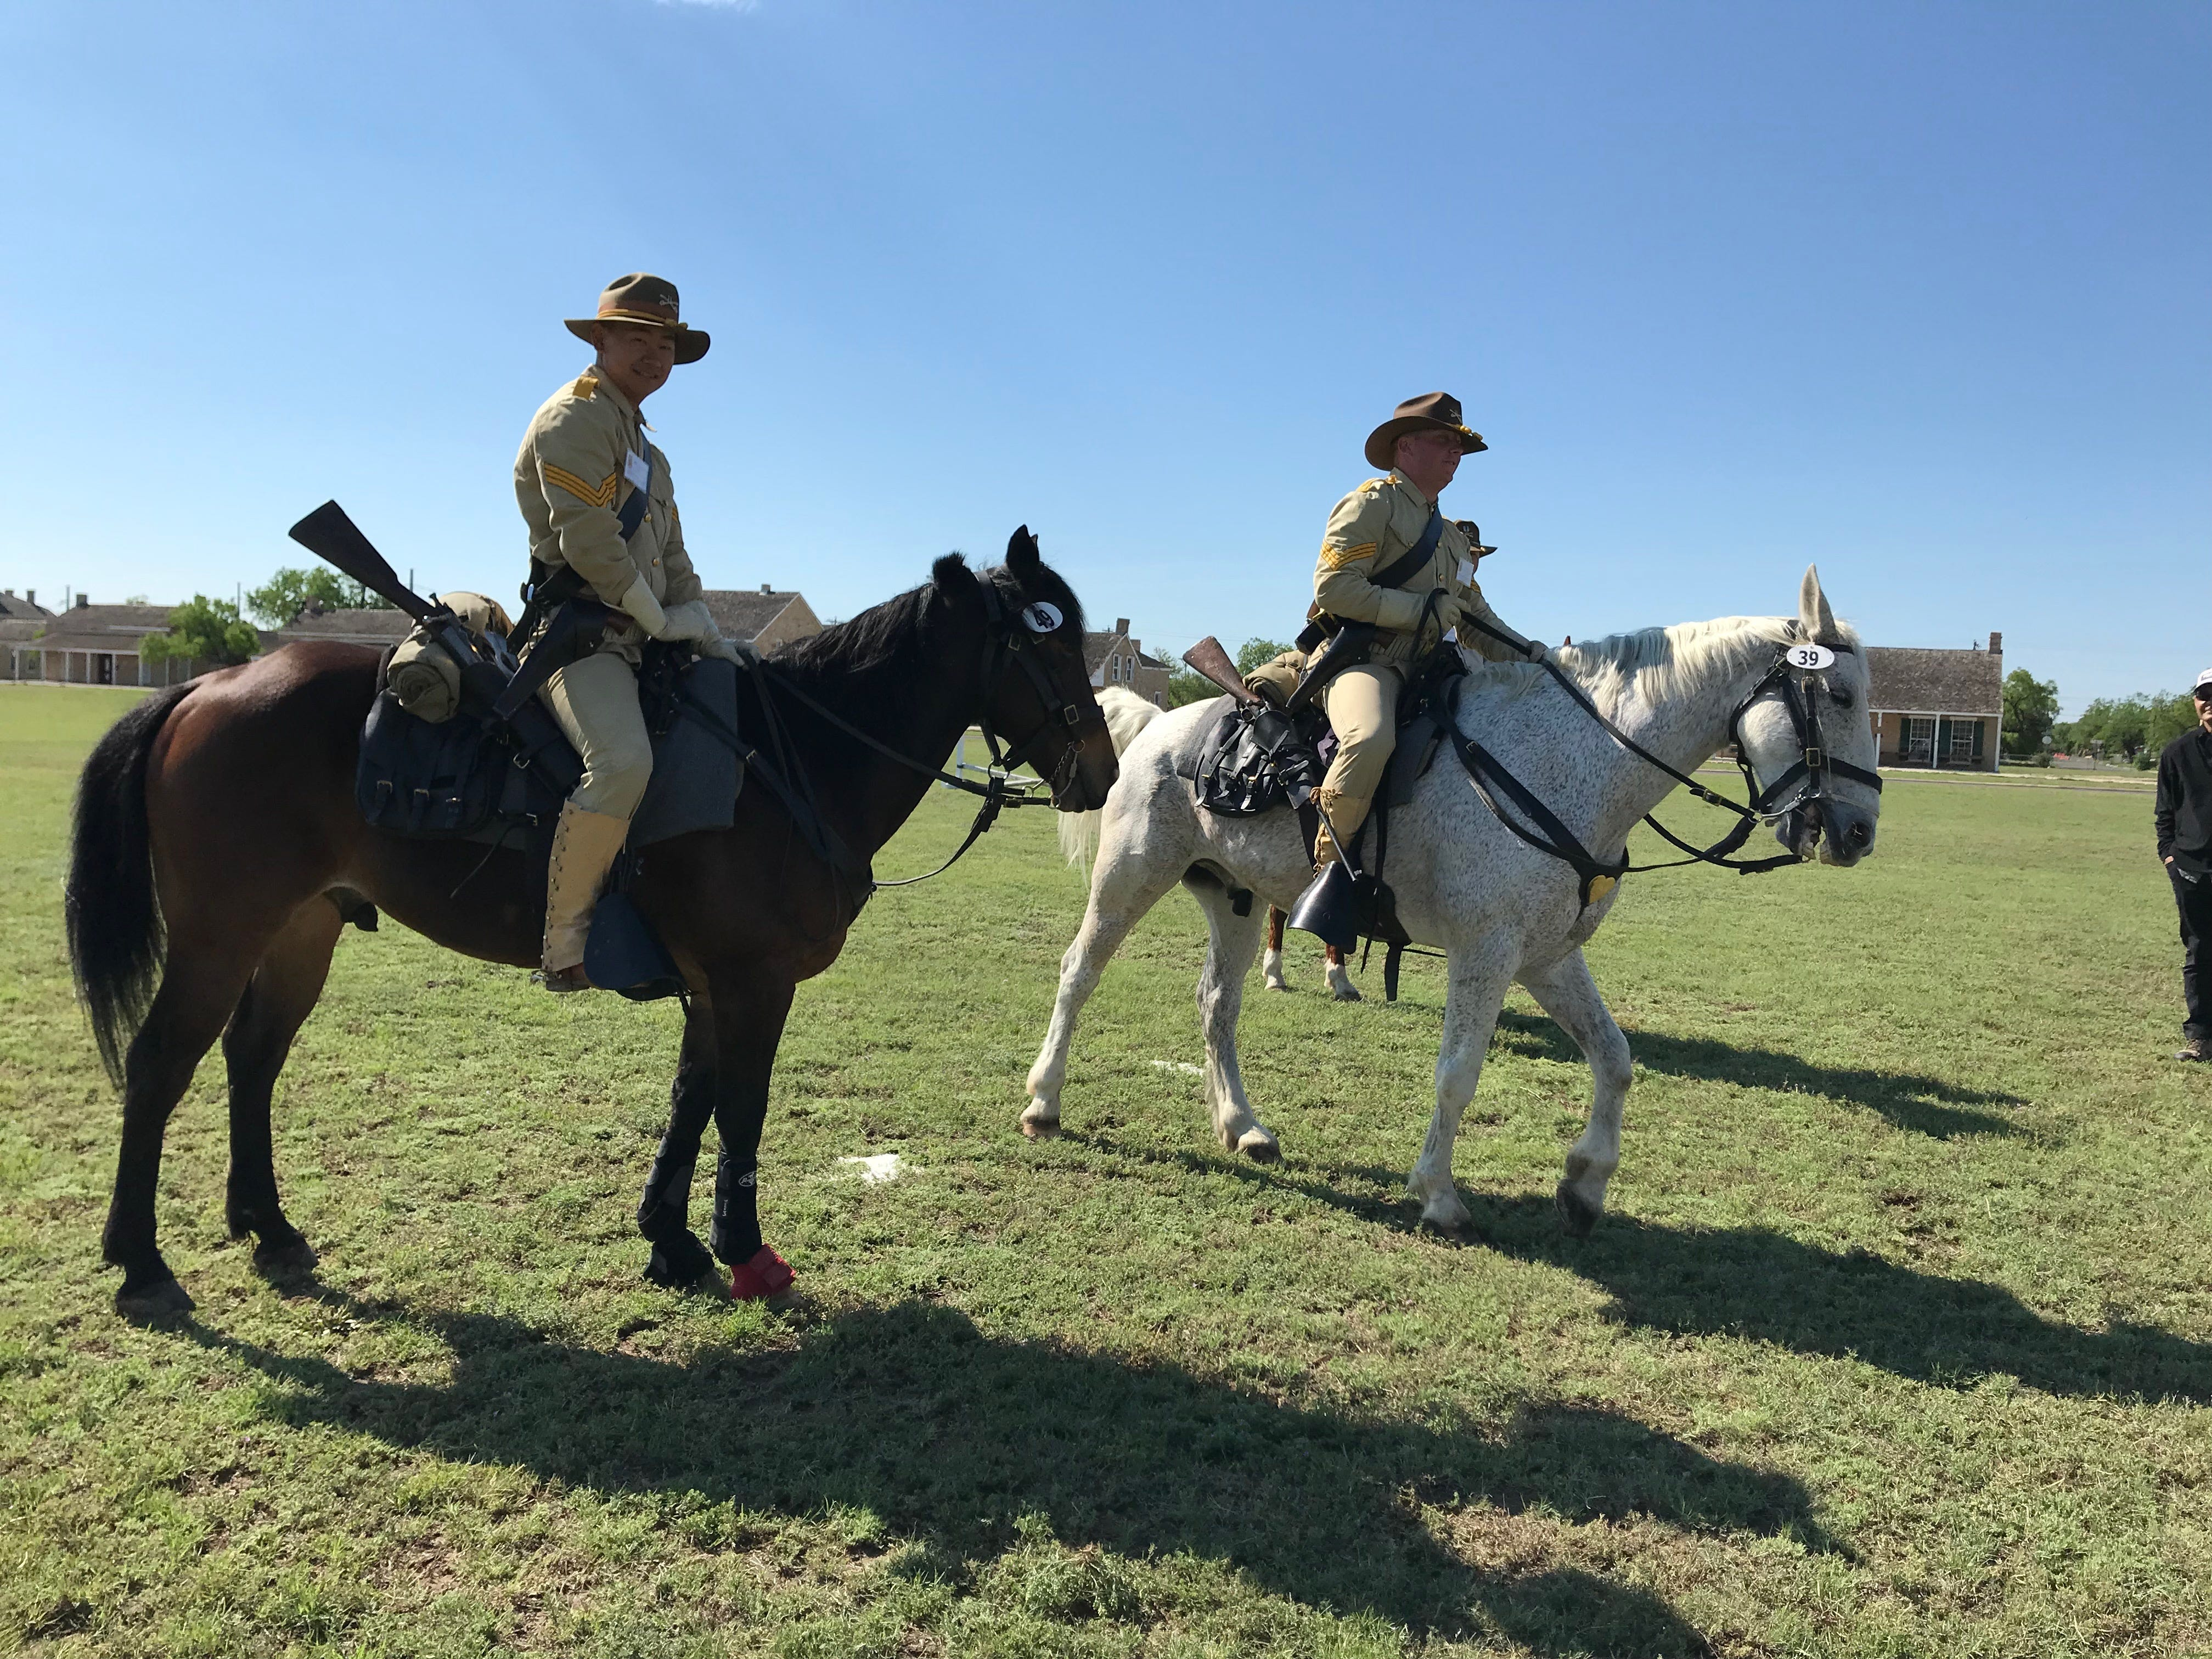 Two riders rest for a moment. whether their horses agree or not, at the Regional Cavalry Competition at Fort Concho, 630 S. Oakes St. on Friday, April 26, 2019.